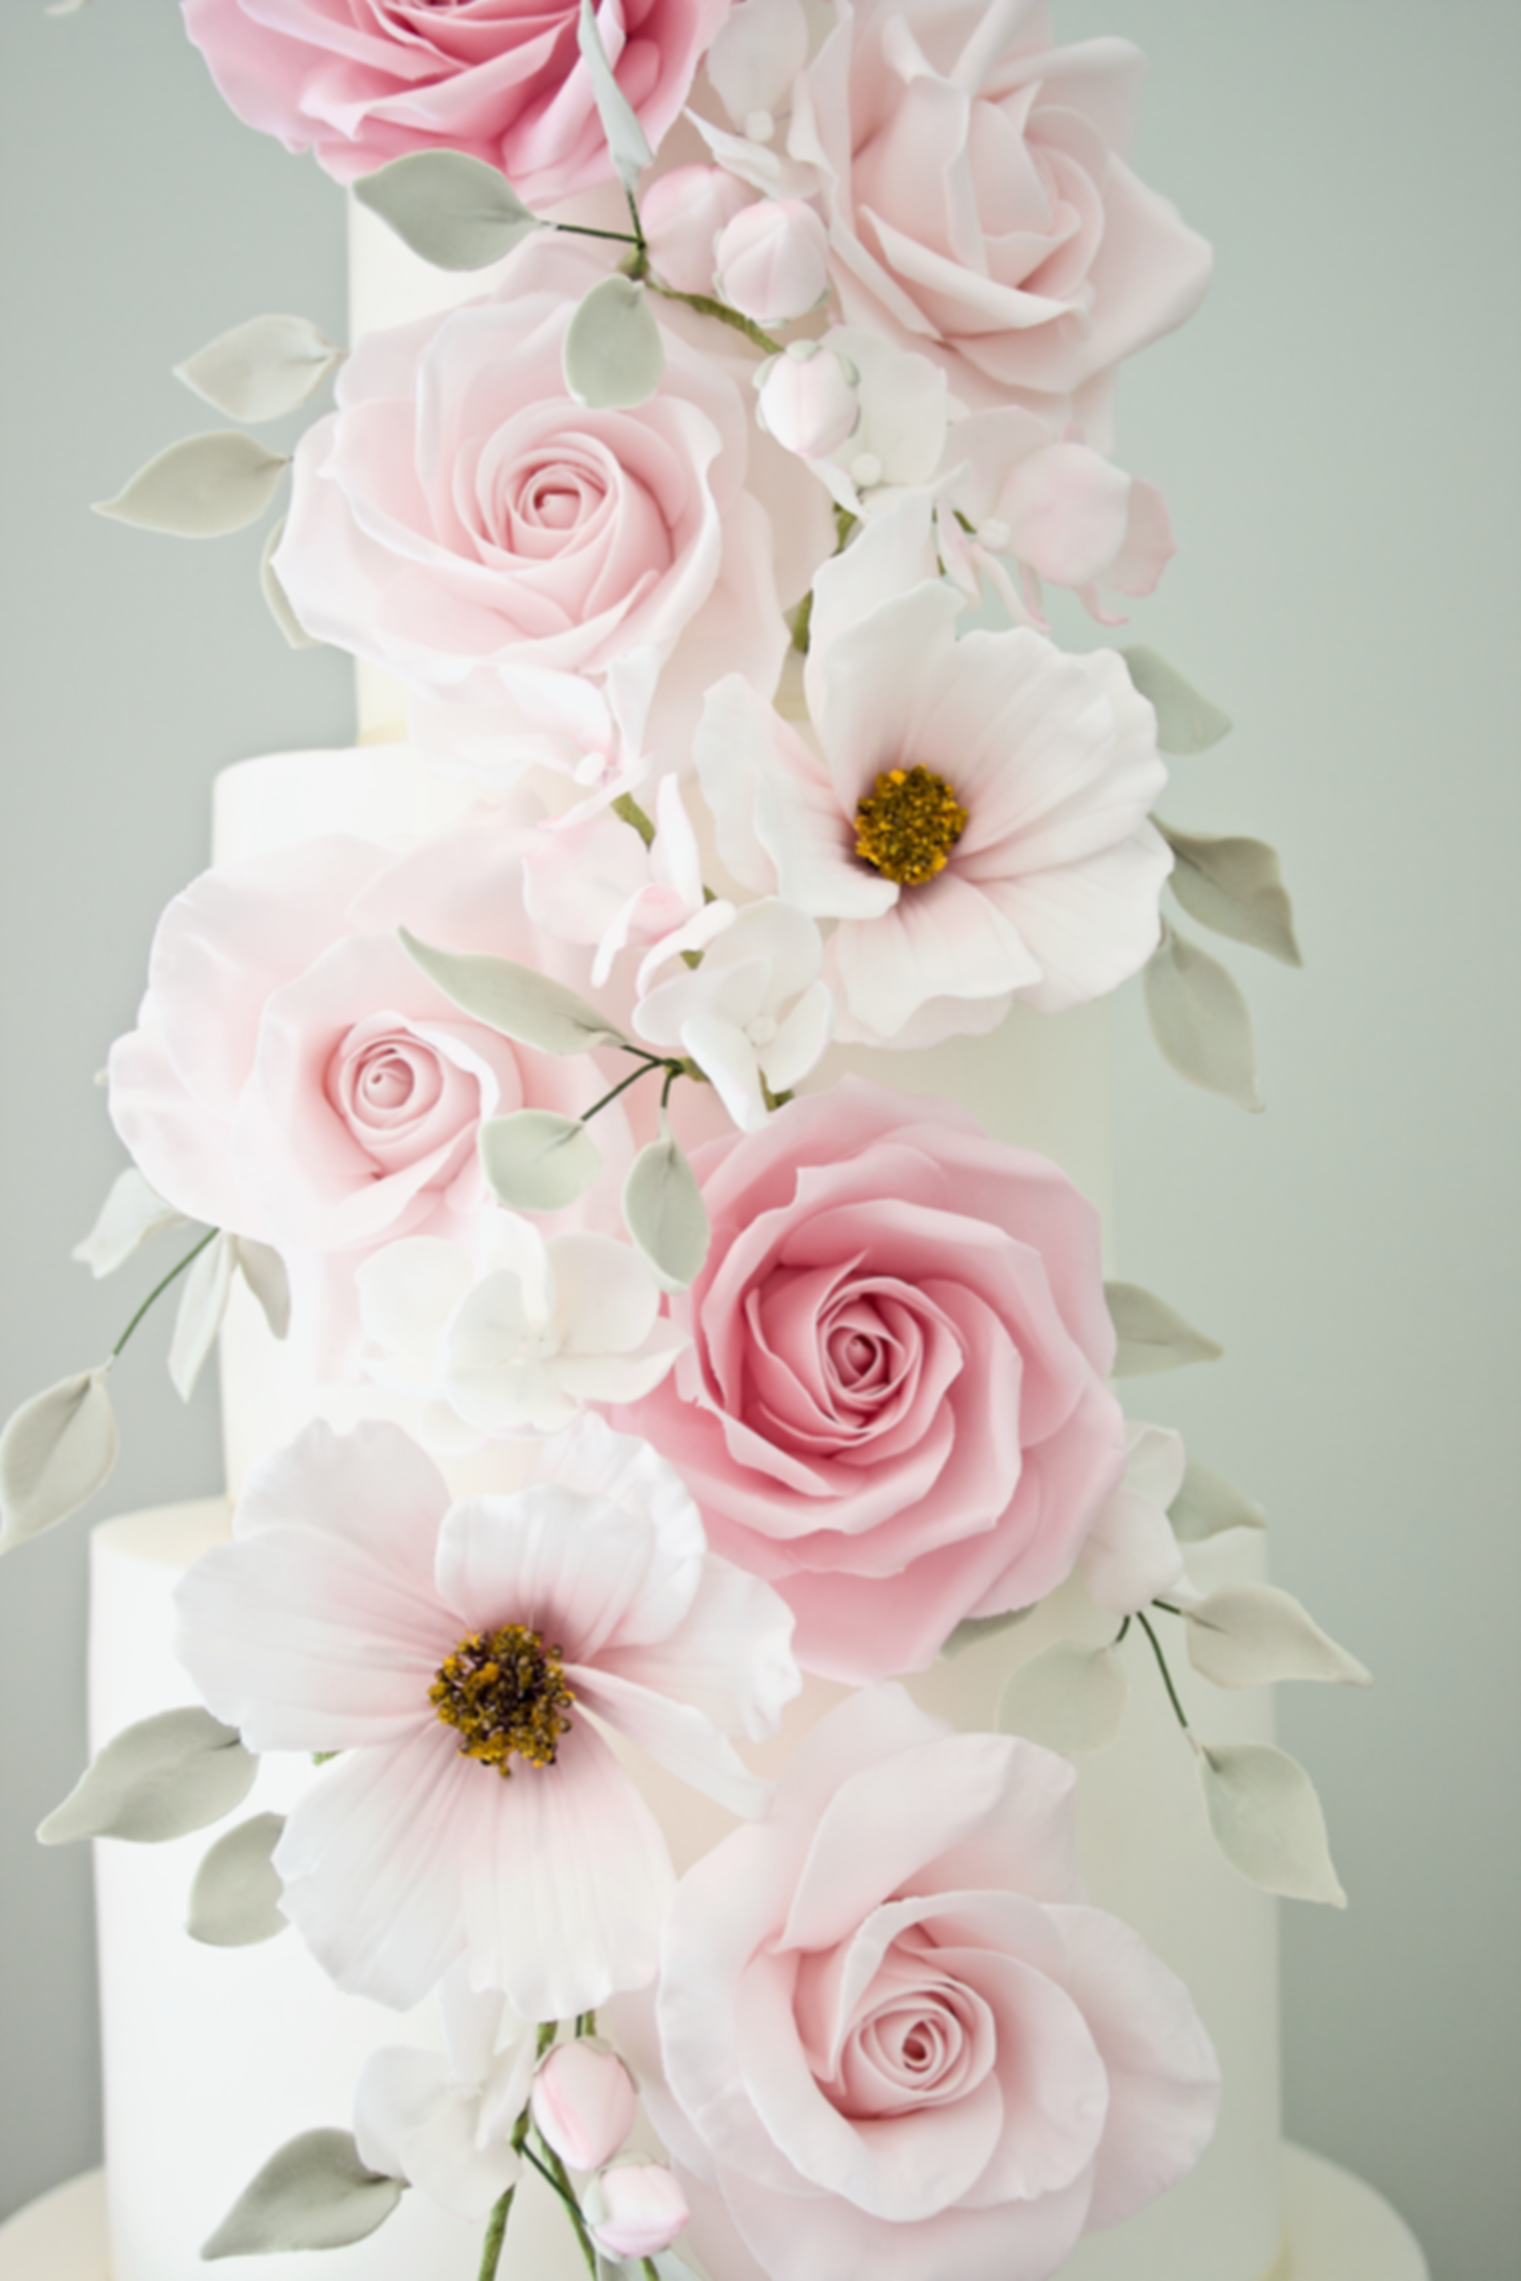 Sugar flowers, wedding cakes northamptonshire